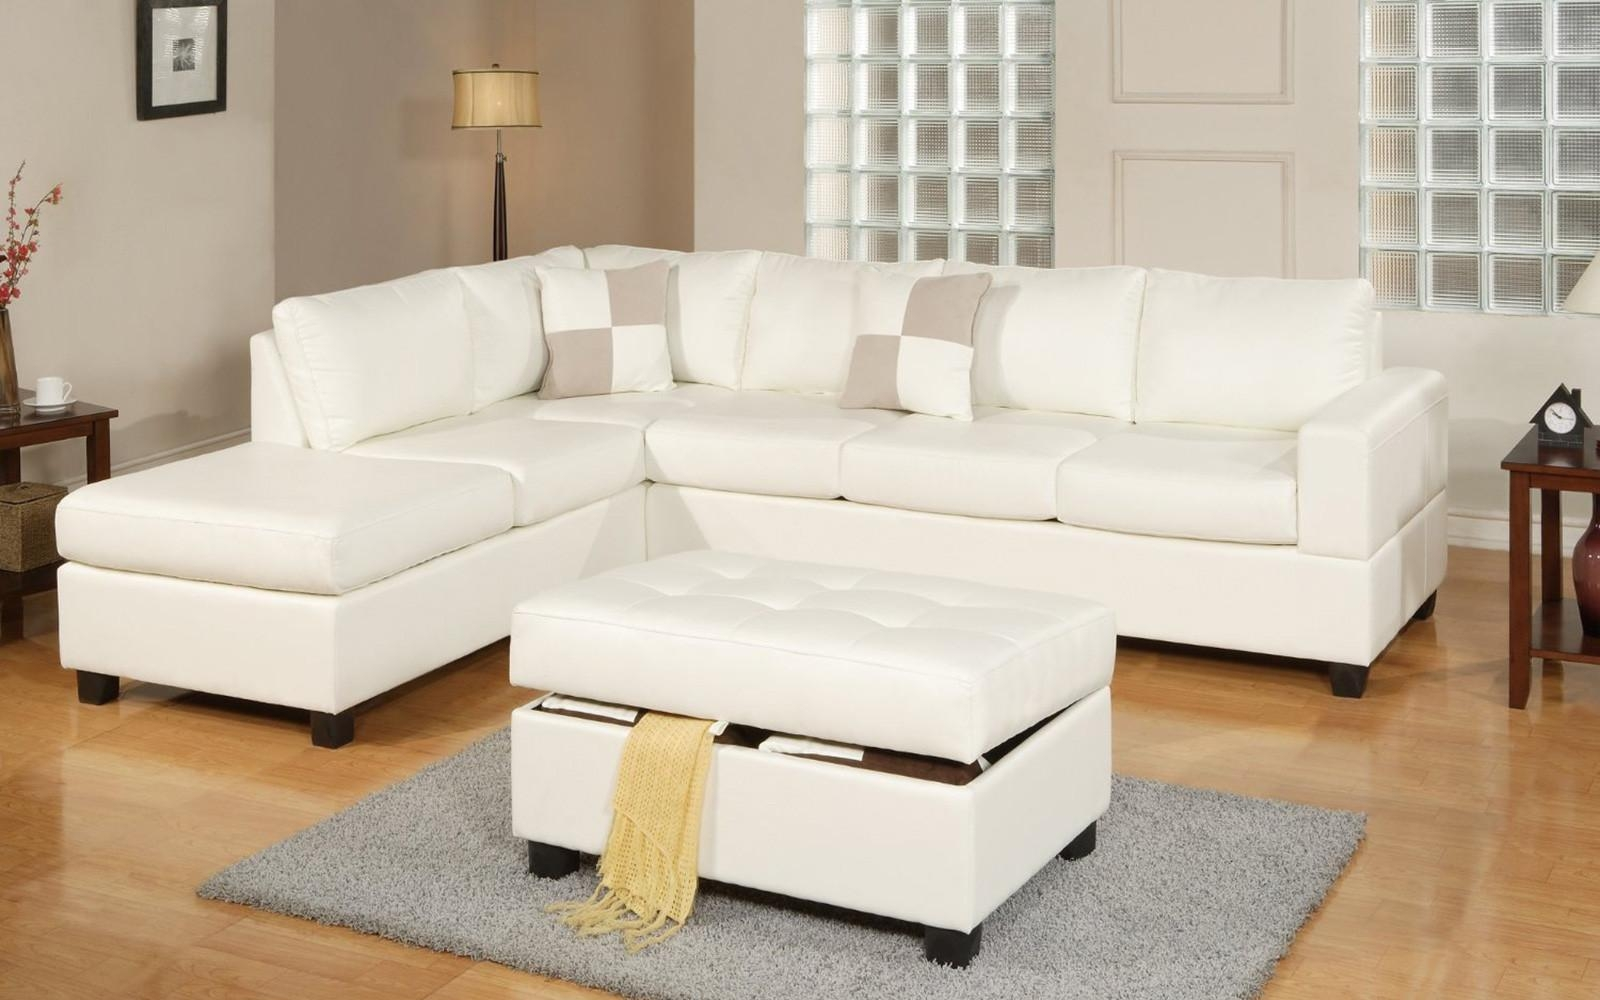 3 Piece Modern Reversible Tufted Bonded Leather Sectional Sofa In Sofa With Chaise And Ottoman (Image 1 of 20)